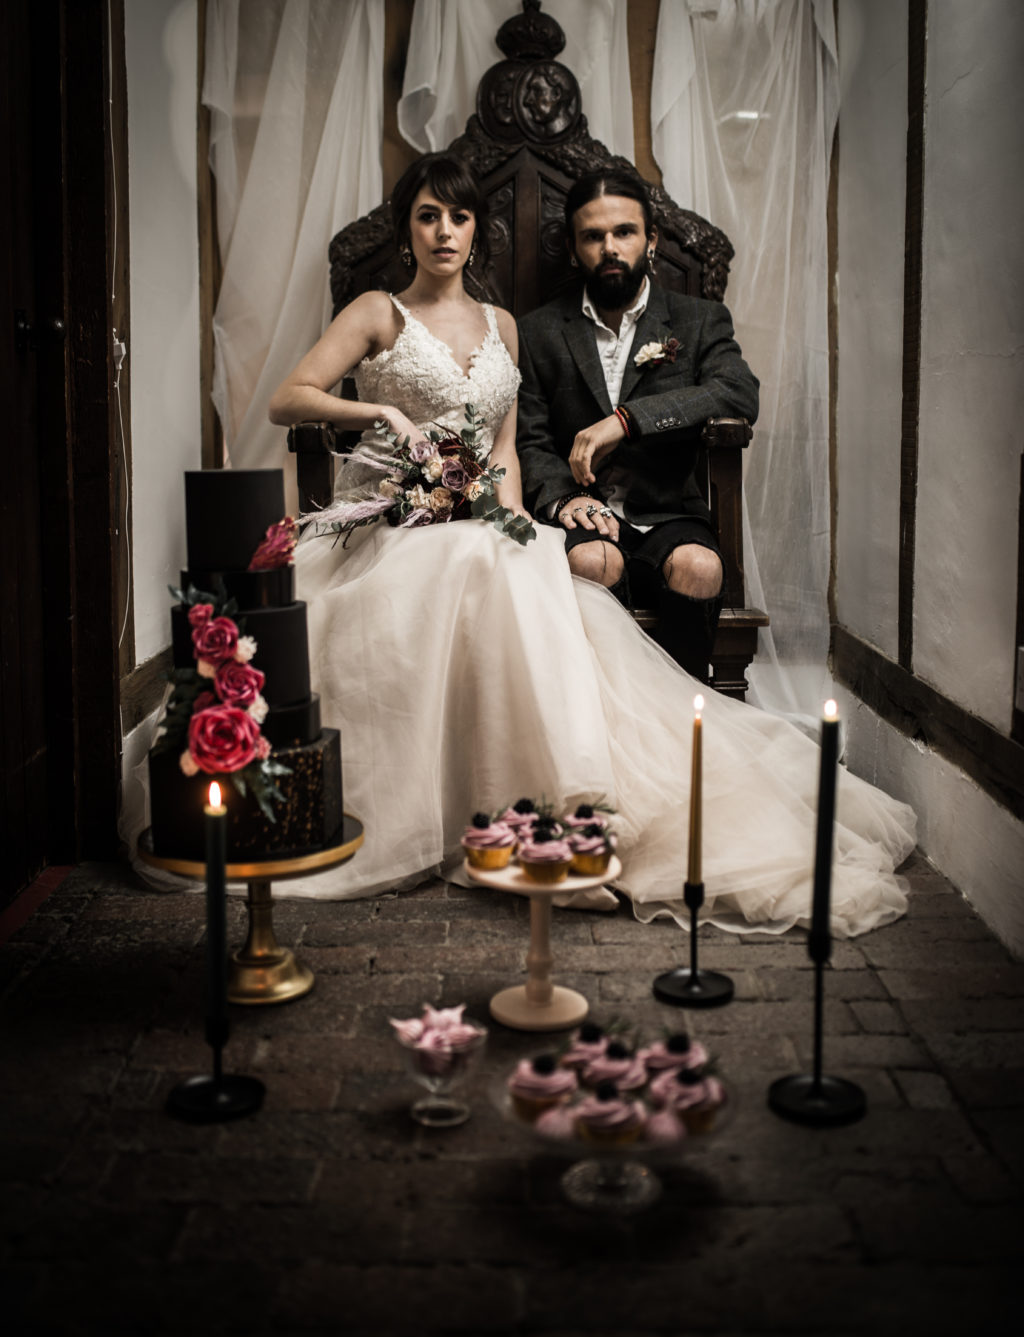 Classic Rock Wedding with Black Wedding Cake and Alternative Groom Style